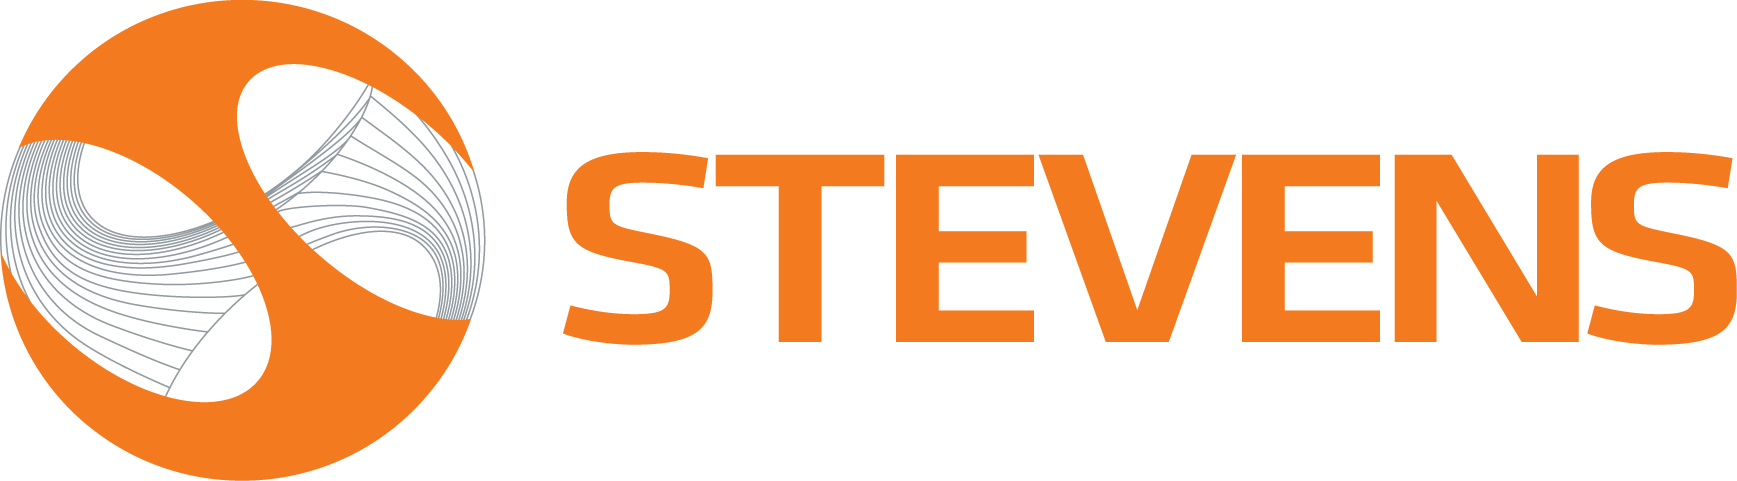 STEVENS Transparent LOGO